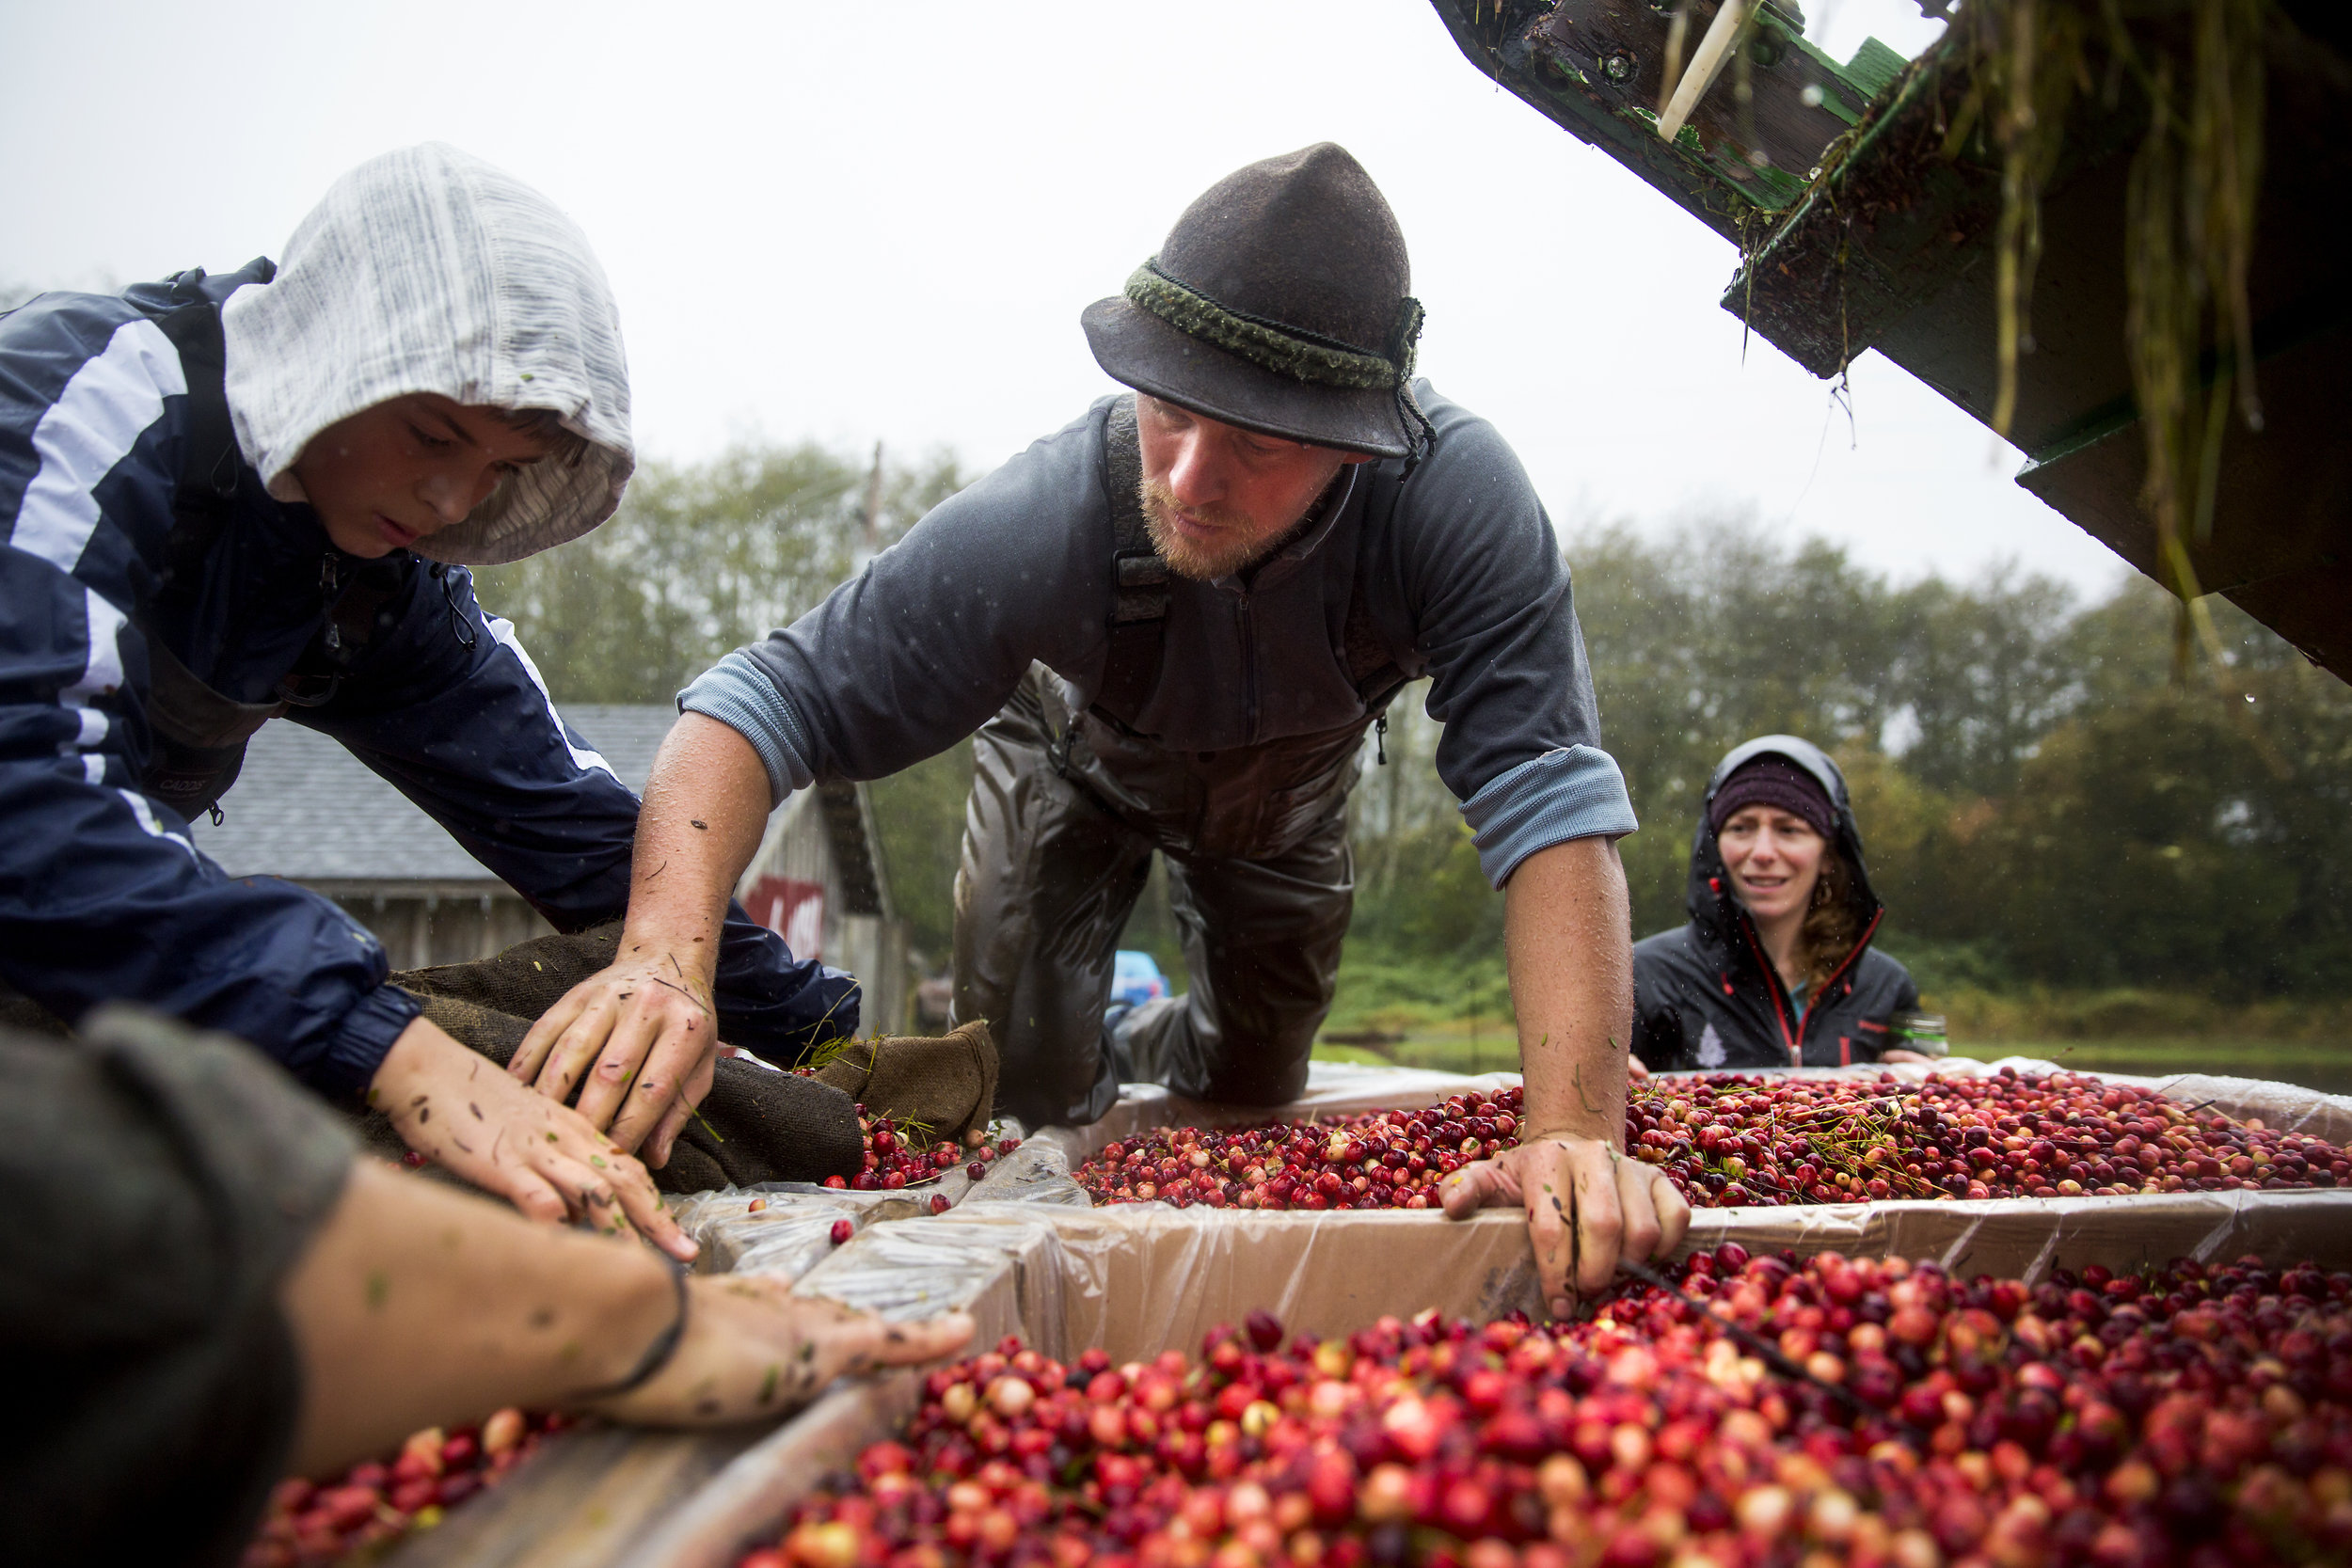 Jared Oakes, co-owner of Starvation Alley Farms, pushes stray cranberries into their boxes after harvesting the second bog of the day in Long Beach. Although the yield of organic cranberry bogs are lower than conventional farming, the company reduced it's synthetic chemical footprint by 100 pounds per bog a year. (Sy Bean / Seattle Refined)